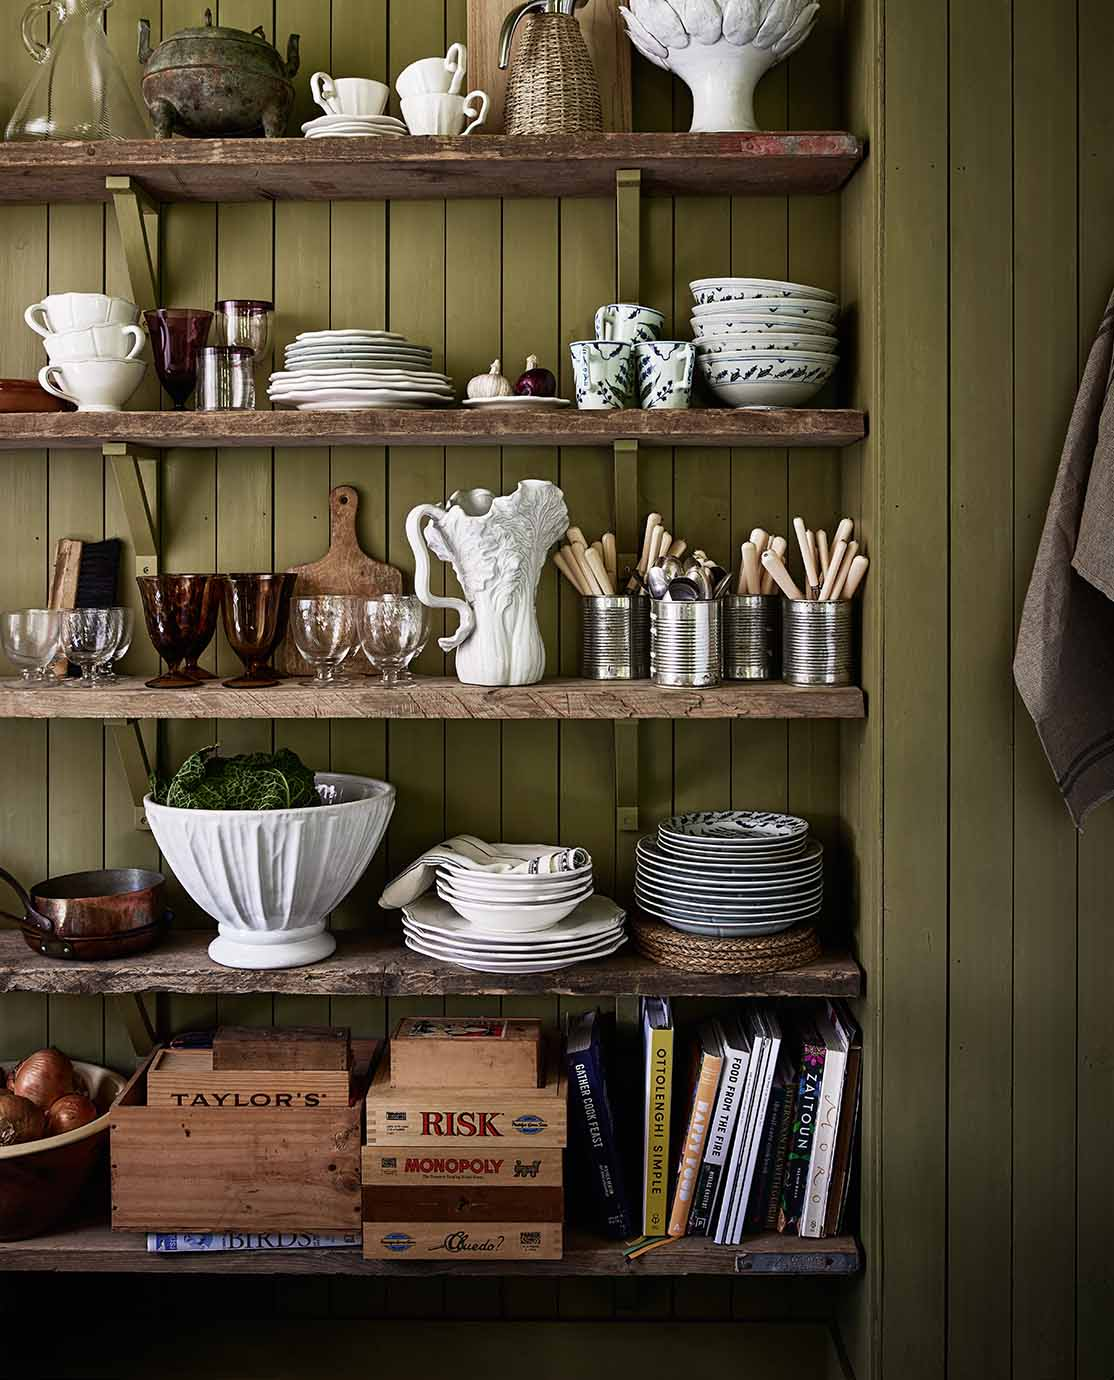 Green shelving with a mixed of white crockery and cutlery